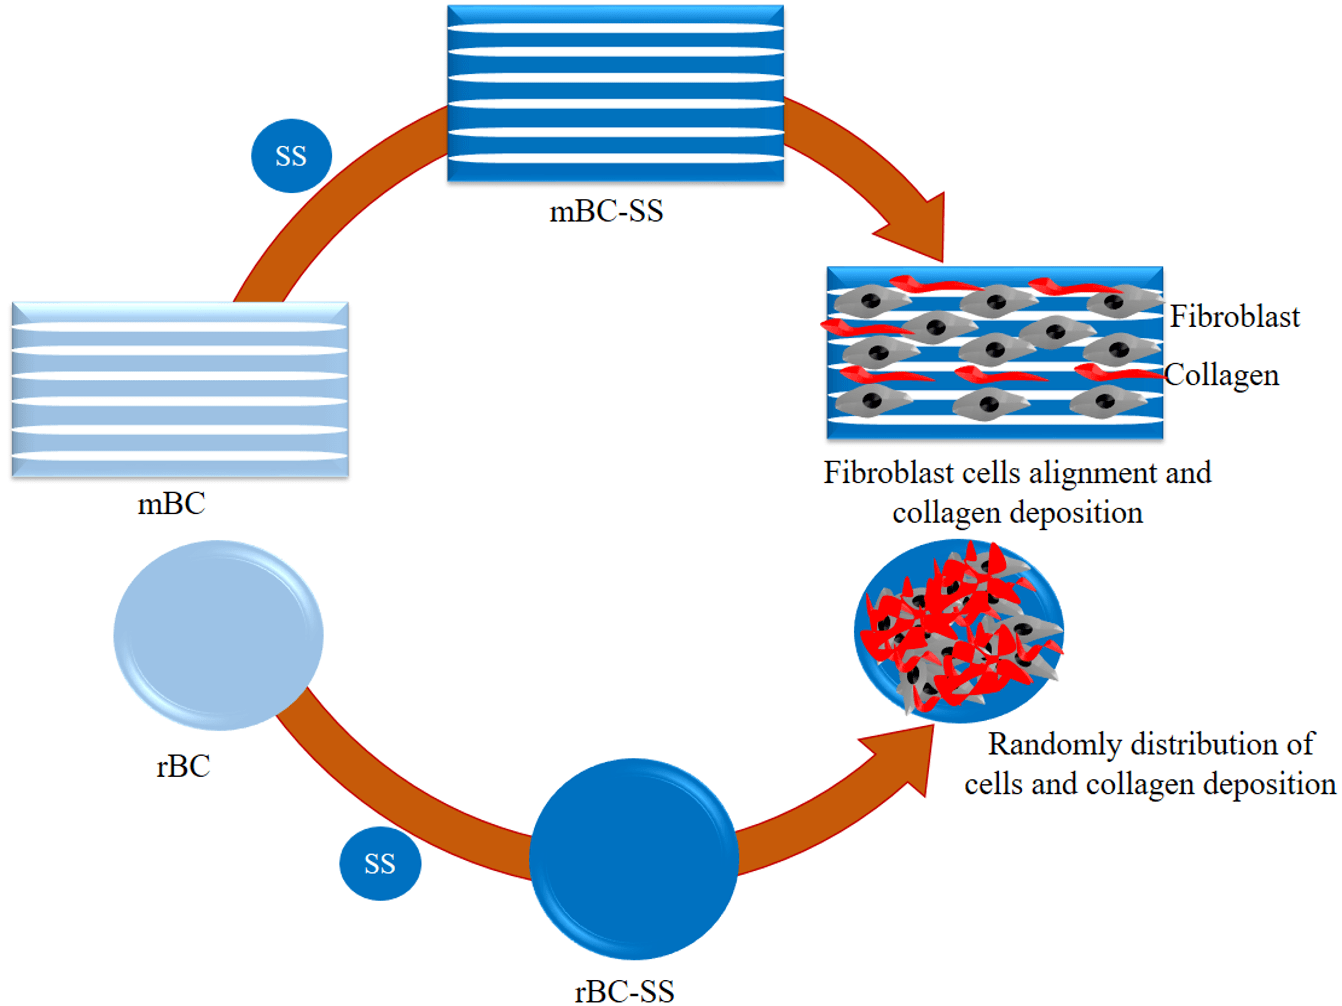 Combining Silk Sericin and Surface Micropatterns in Bacterial Cellulose Dressings to Control Fibrosis and Enhance Wound Healing